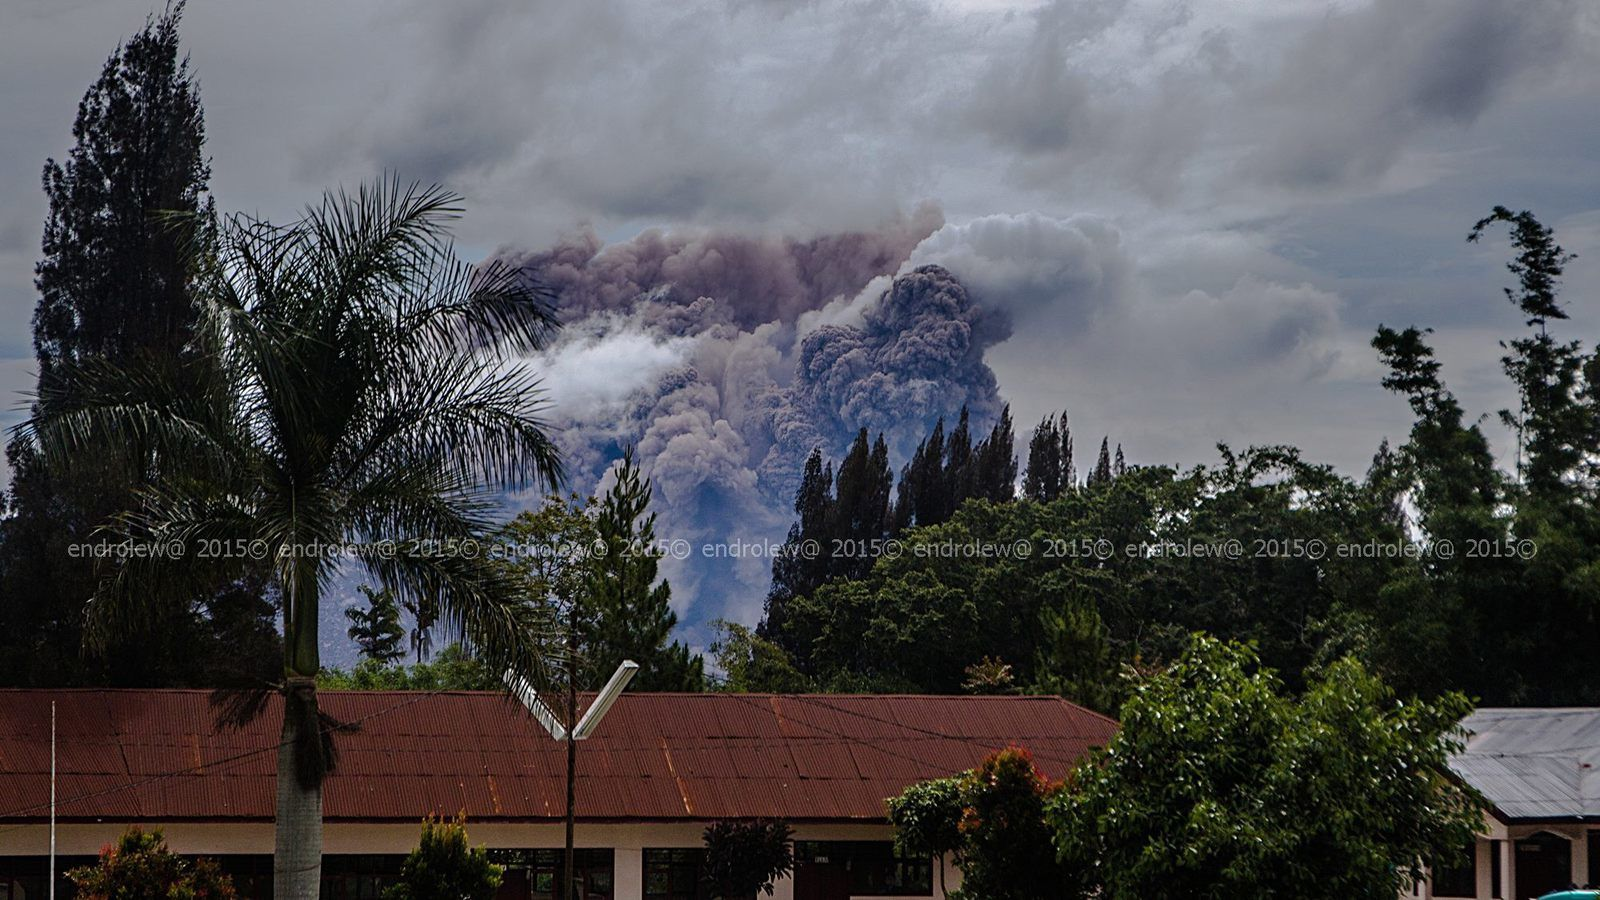 Sinabung le 17.06.2015 / 14h - Coulée pyroclastique - photo endrolew@